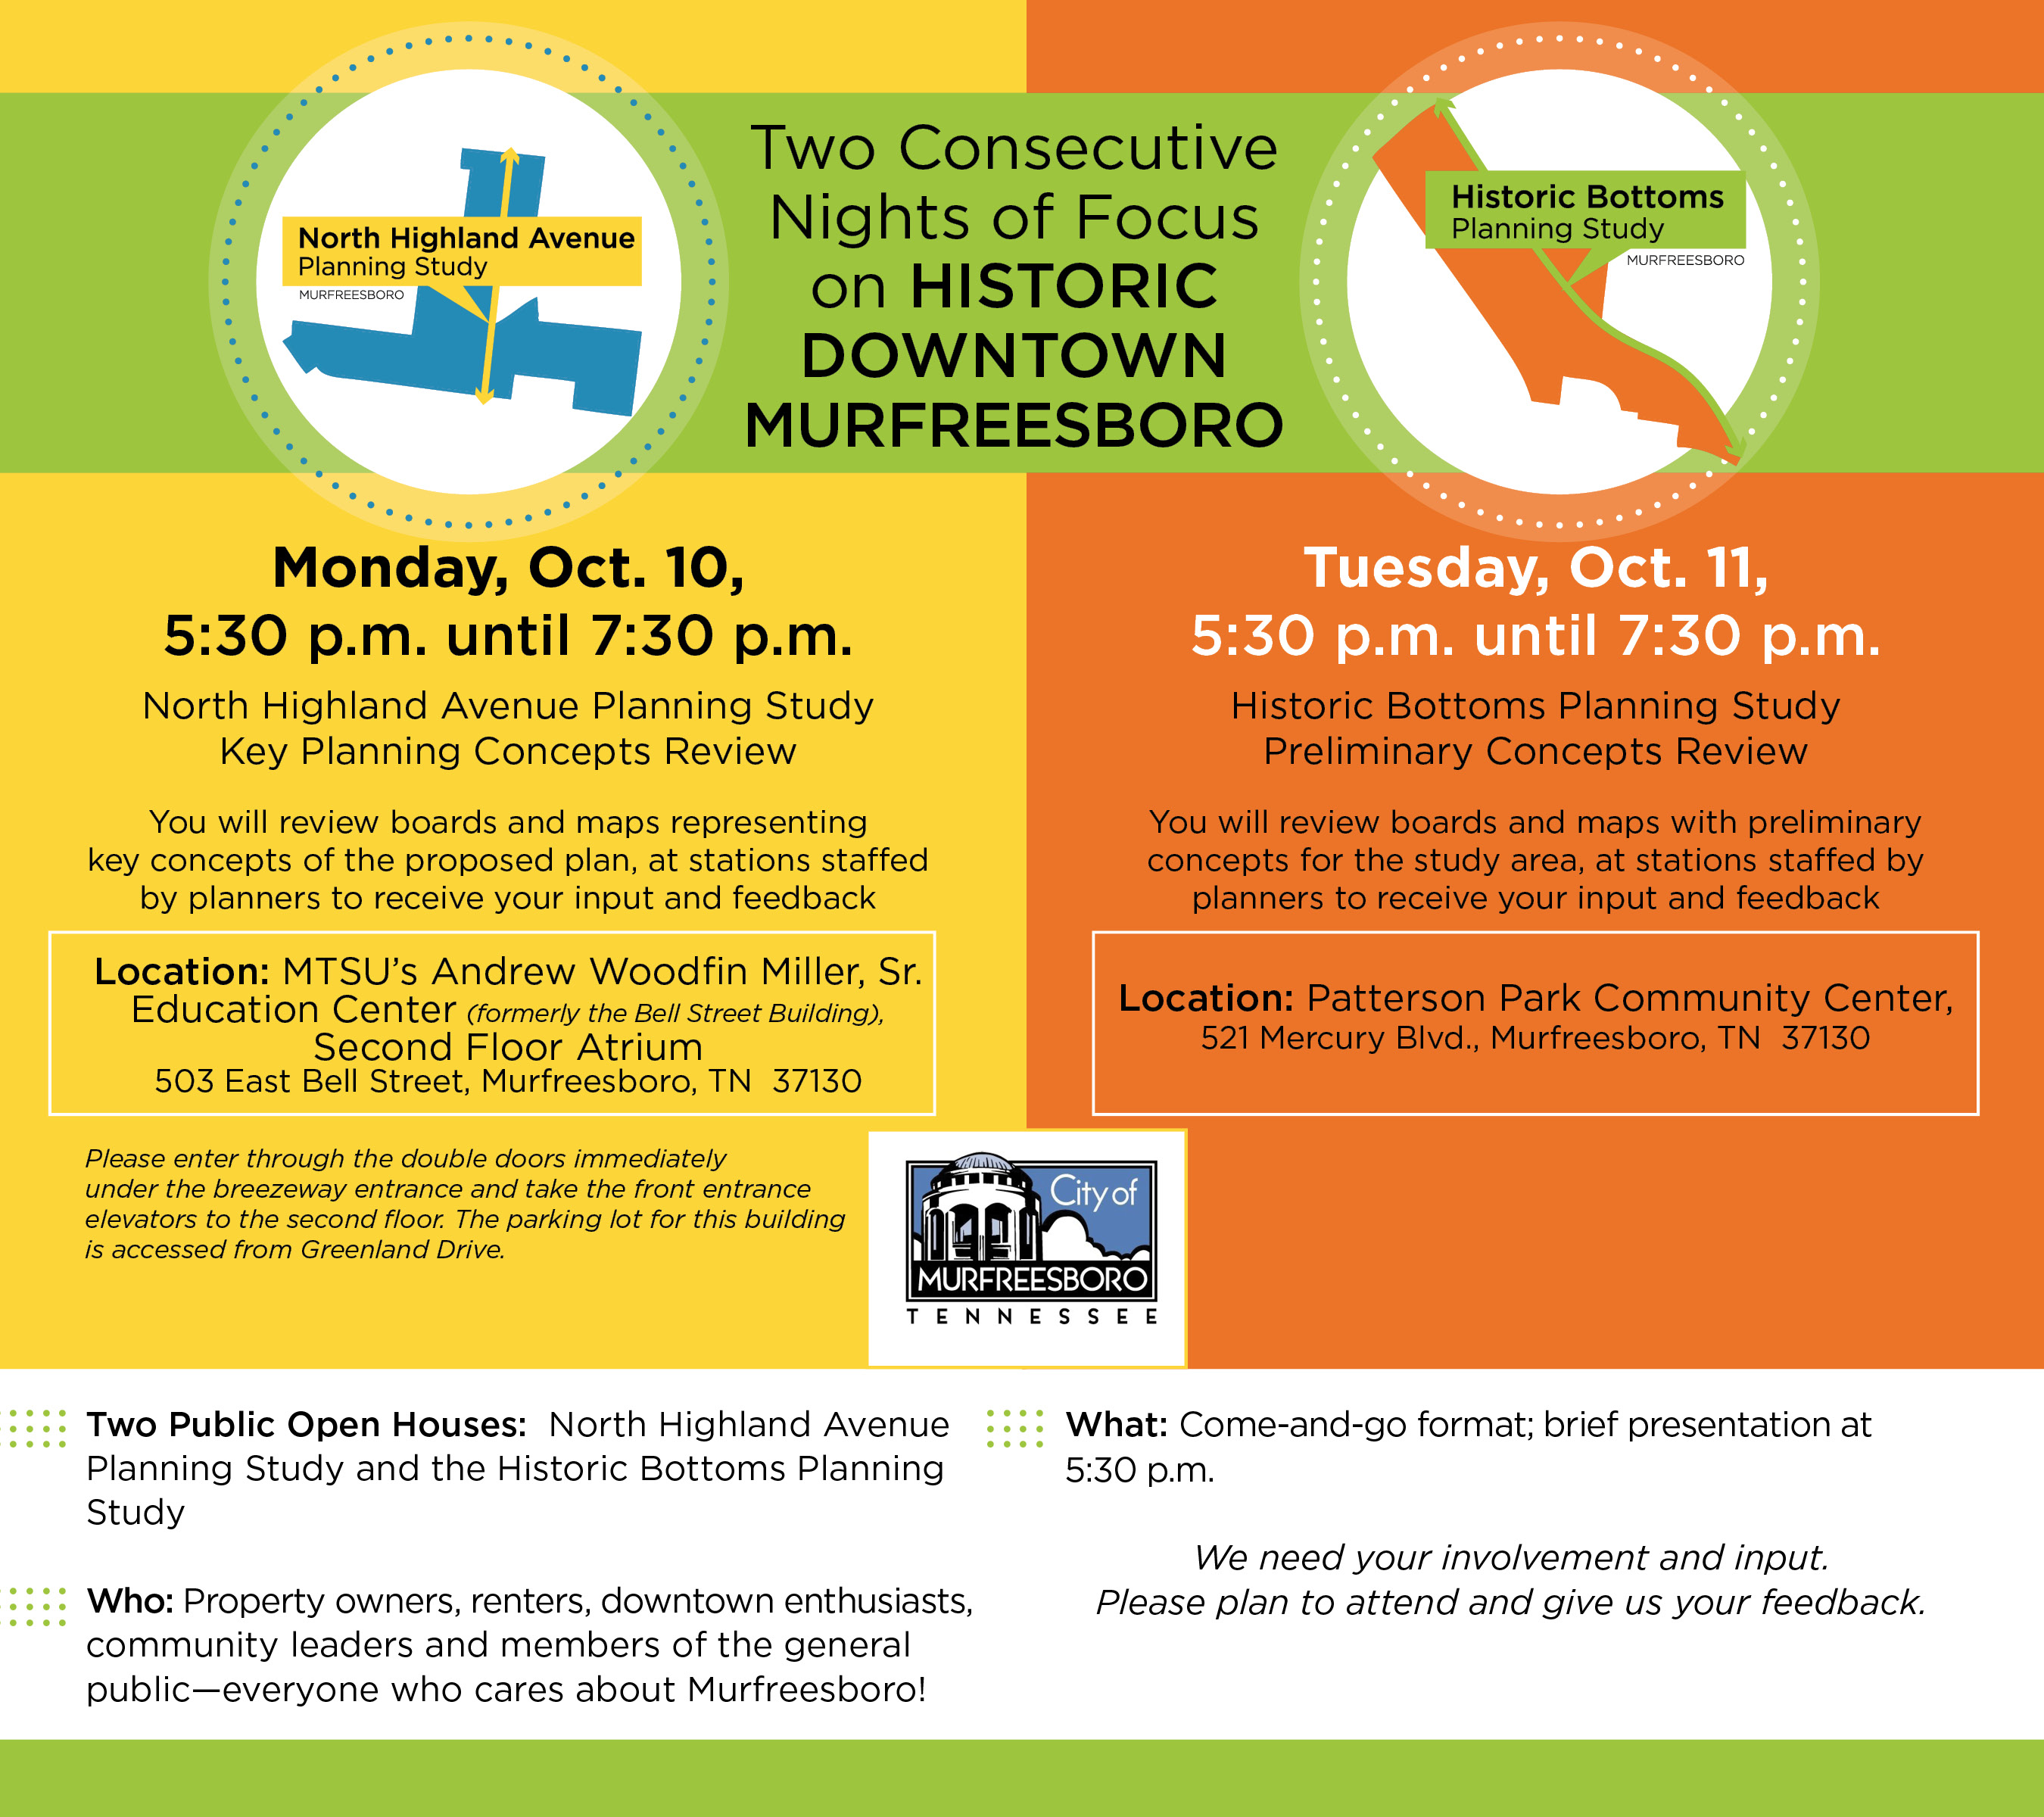 Two Consecutive Nights of Focus on Historic Downtown Murfreesboro Oct. 10-11